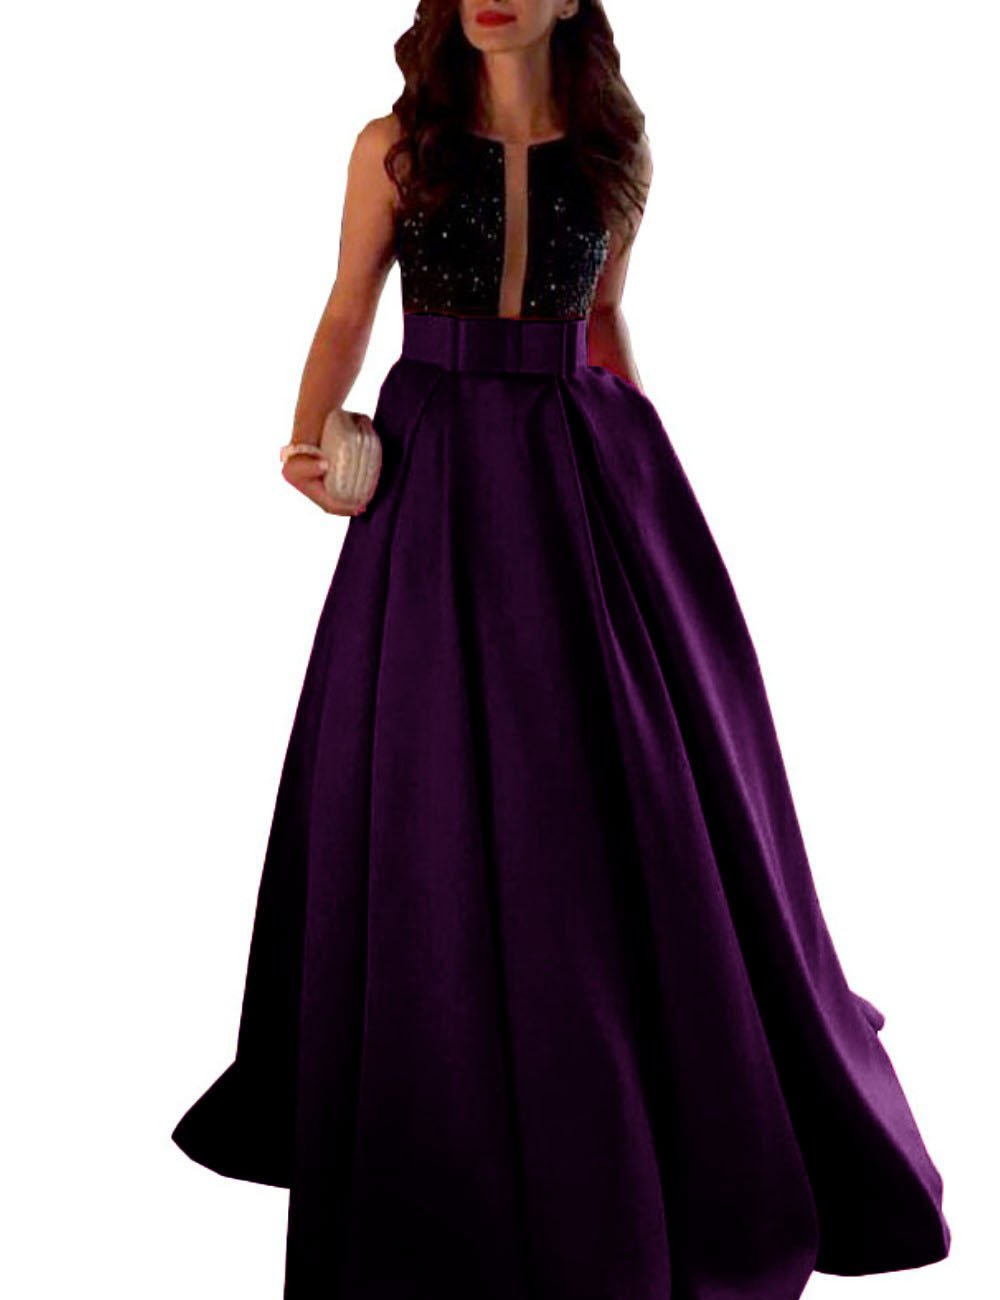 MariRobe Women's Beaded A Line Satin Evening Dress With Sash Formal Party Gown US16 by MariRobe